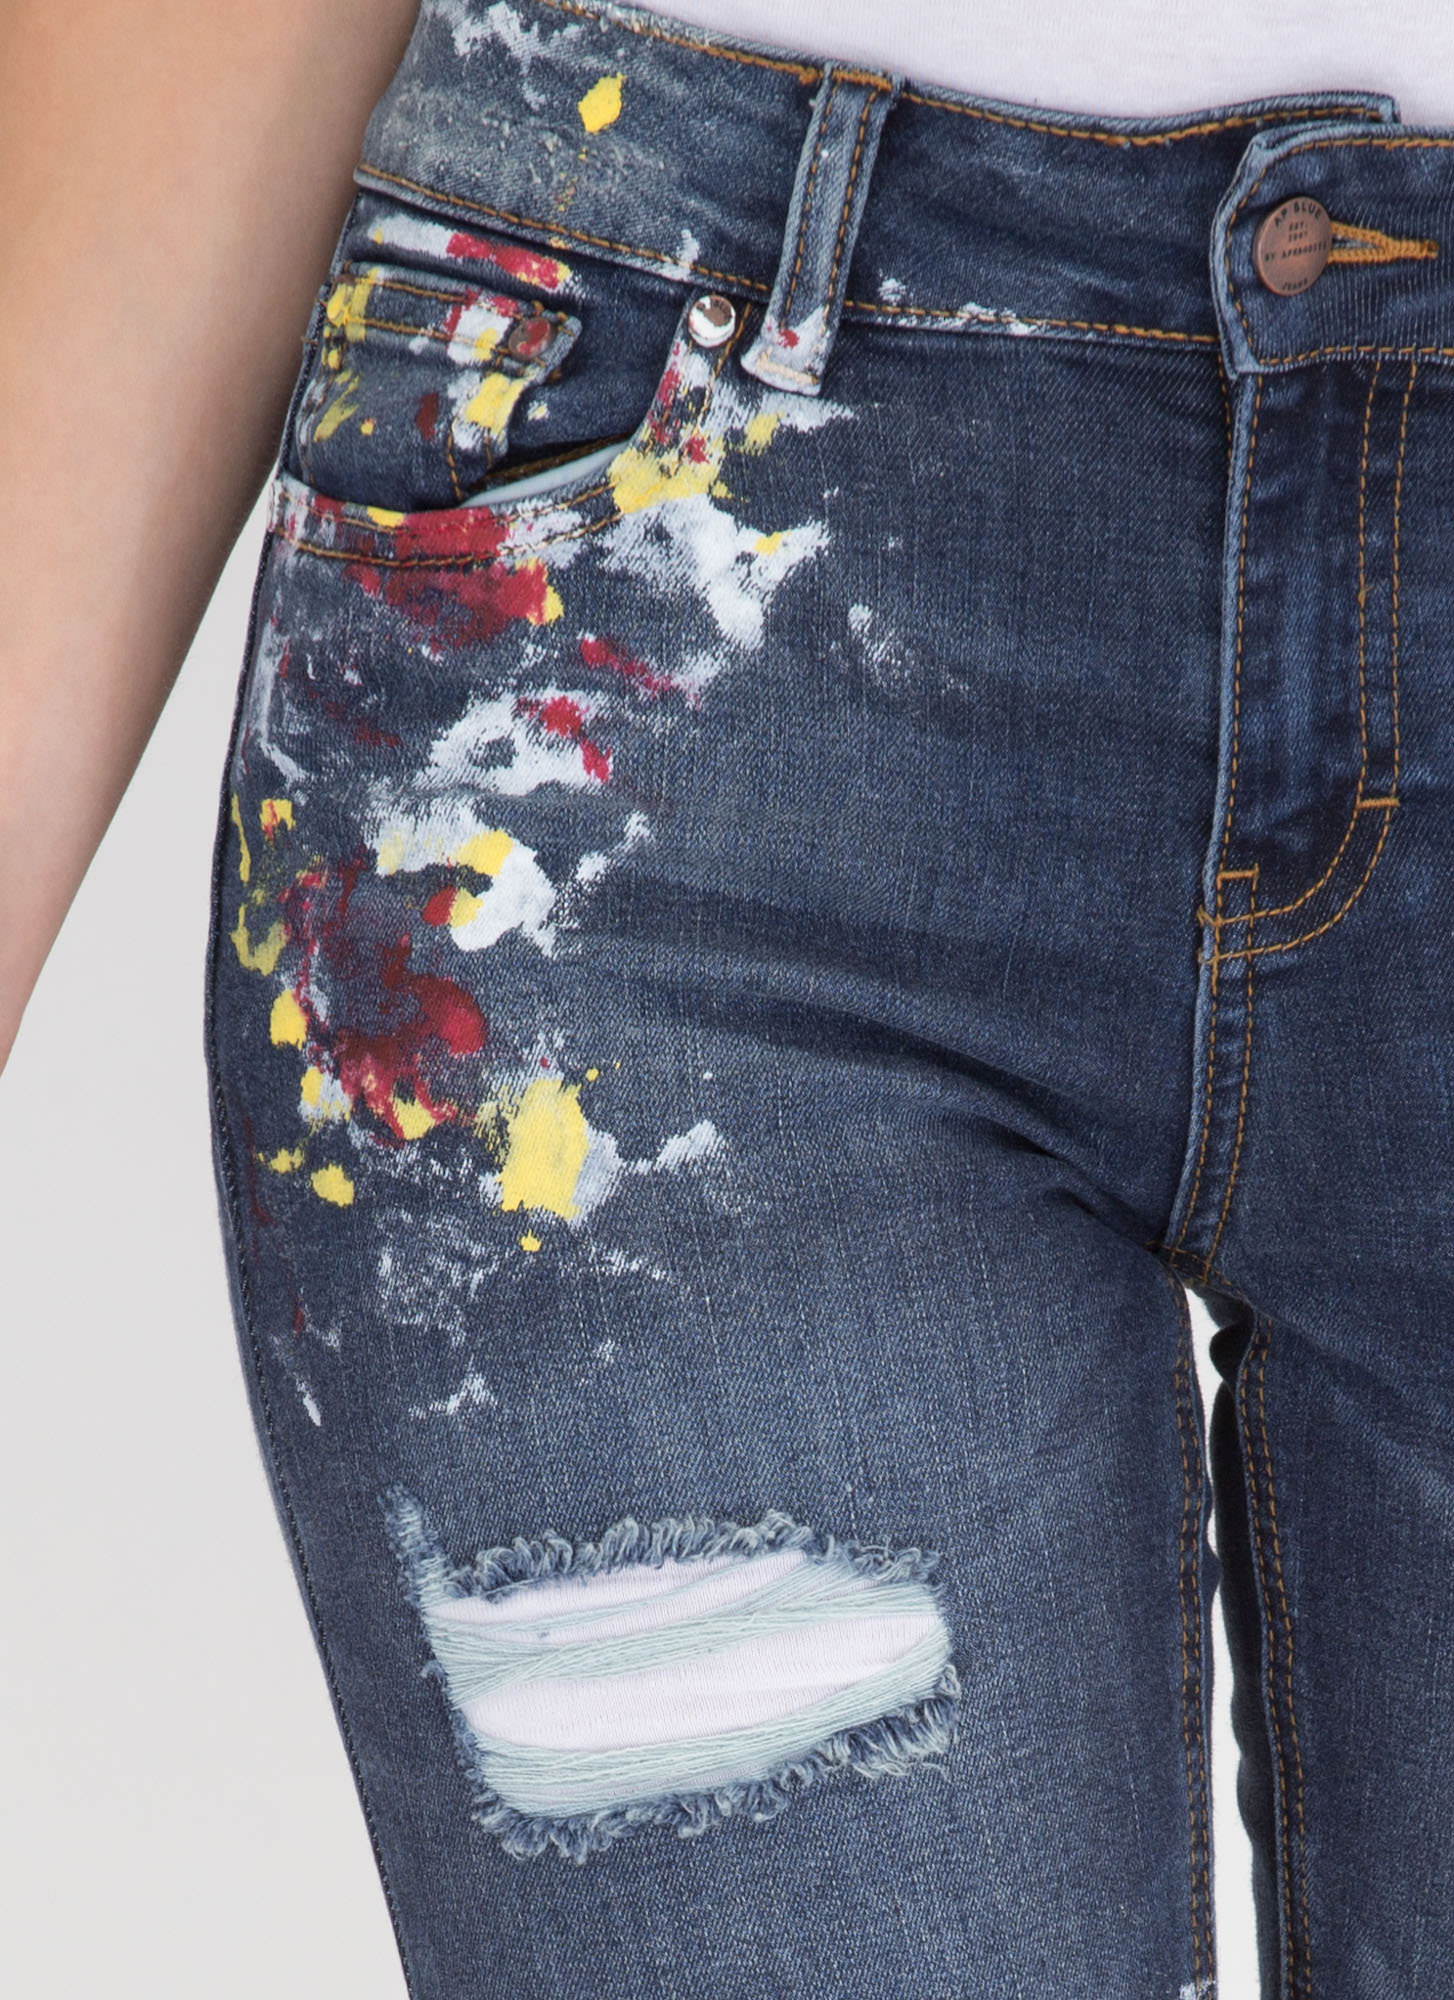 Gallery Work Distressed Spattered Jeans DKBLUE